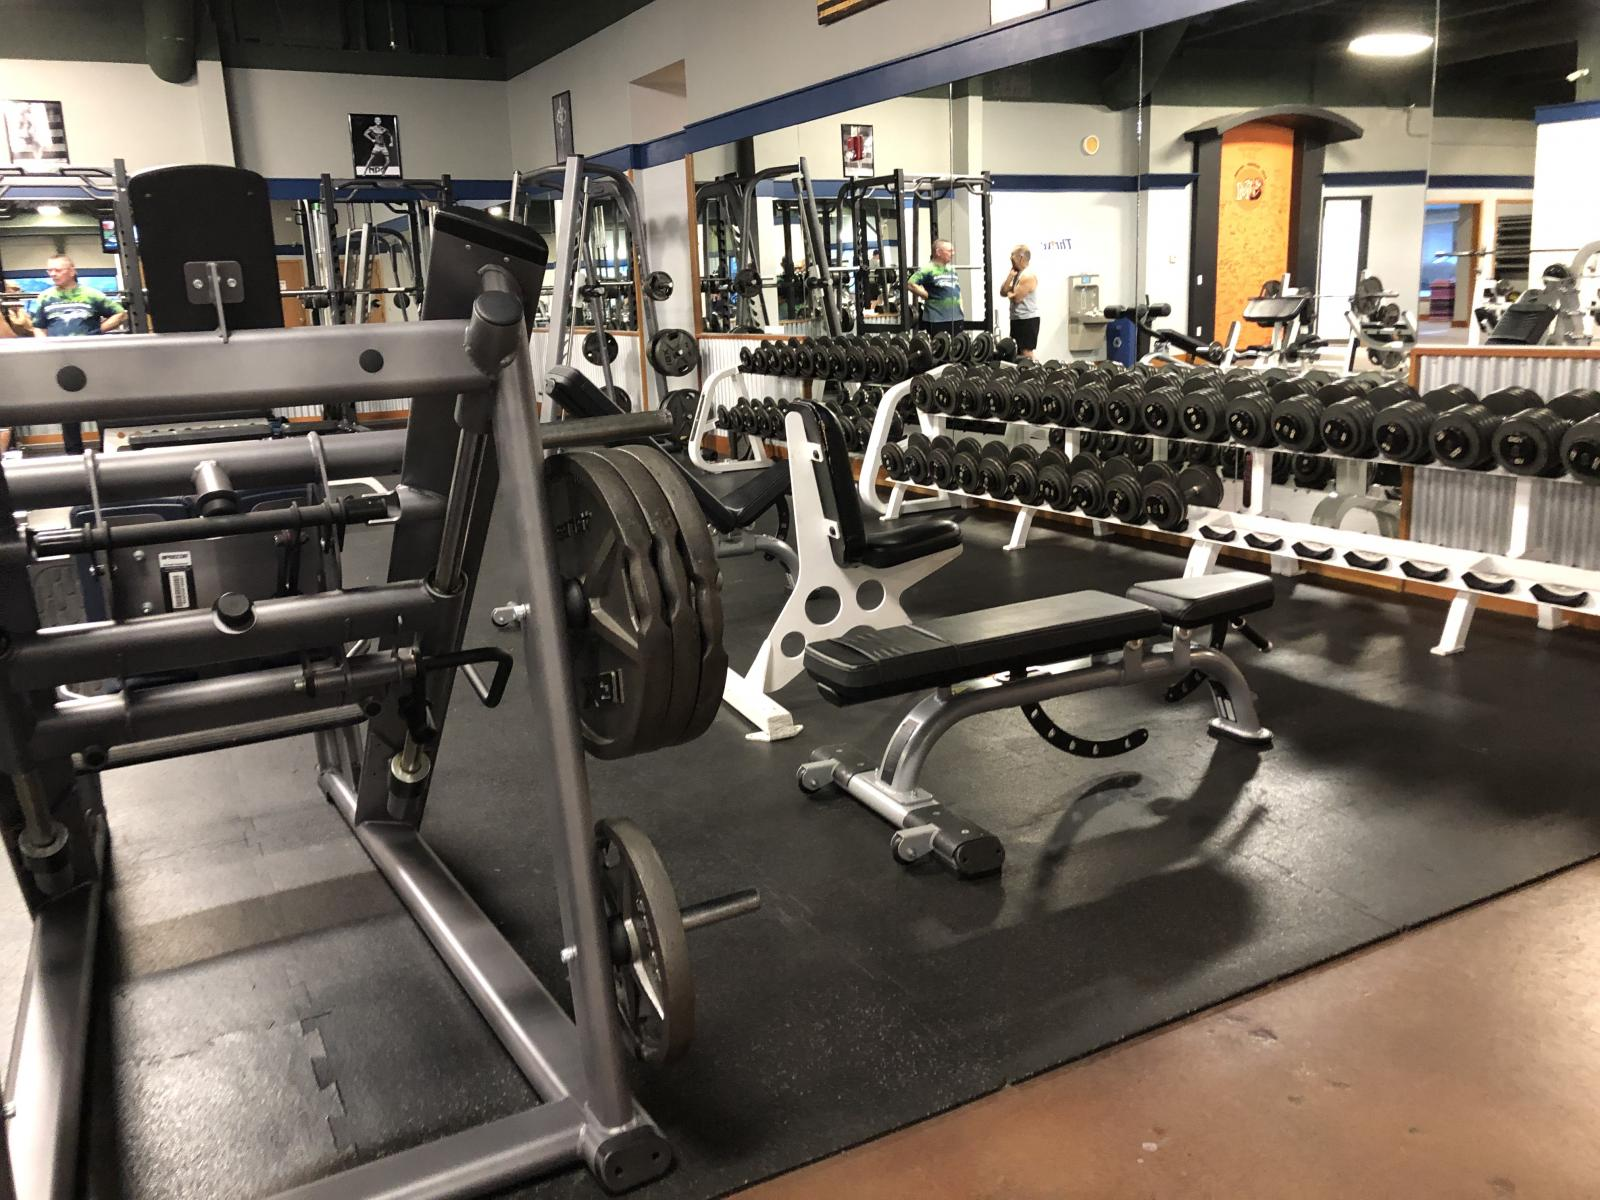 Free weights in a gym